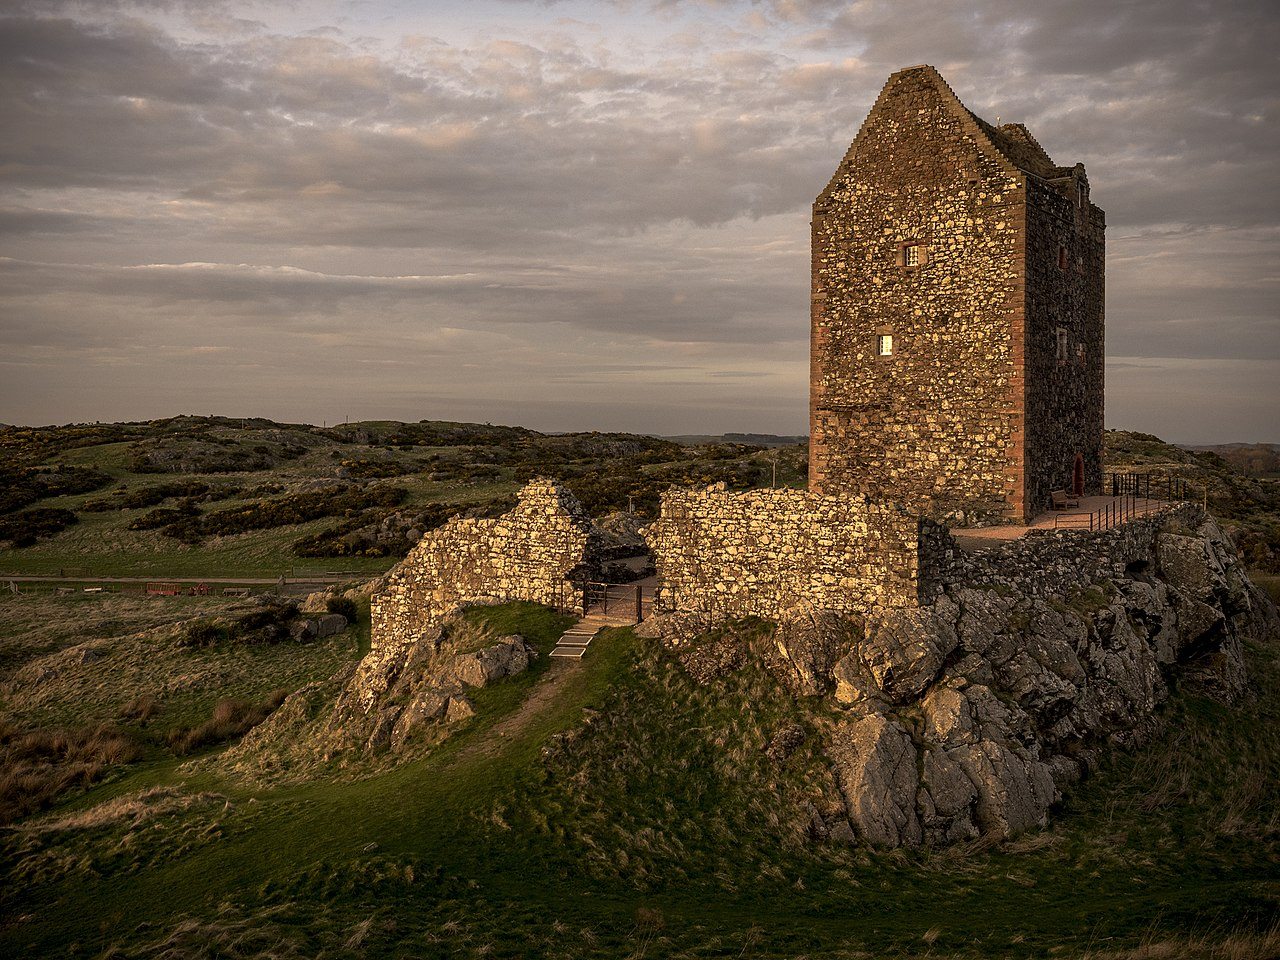 Commended and best image from Scotland 2017: Smailholm Tower, by Keith Proven